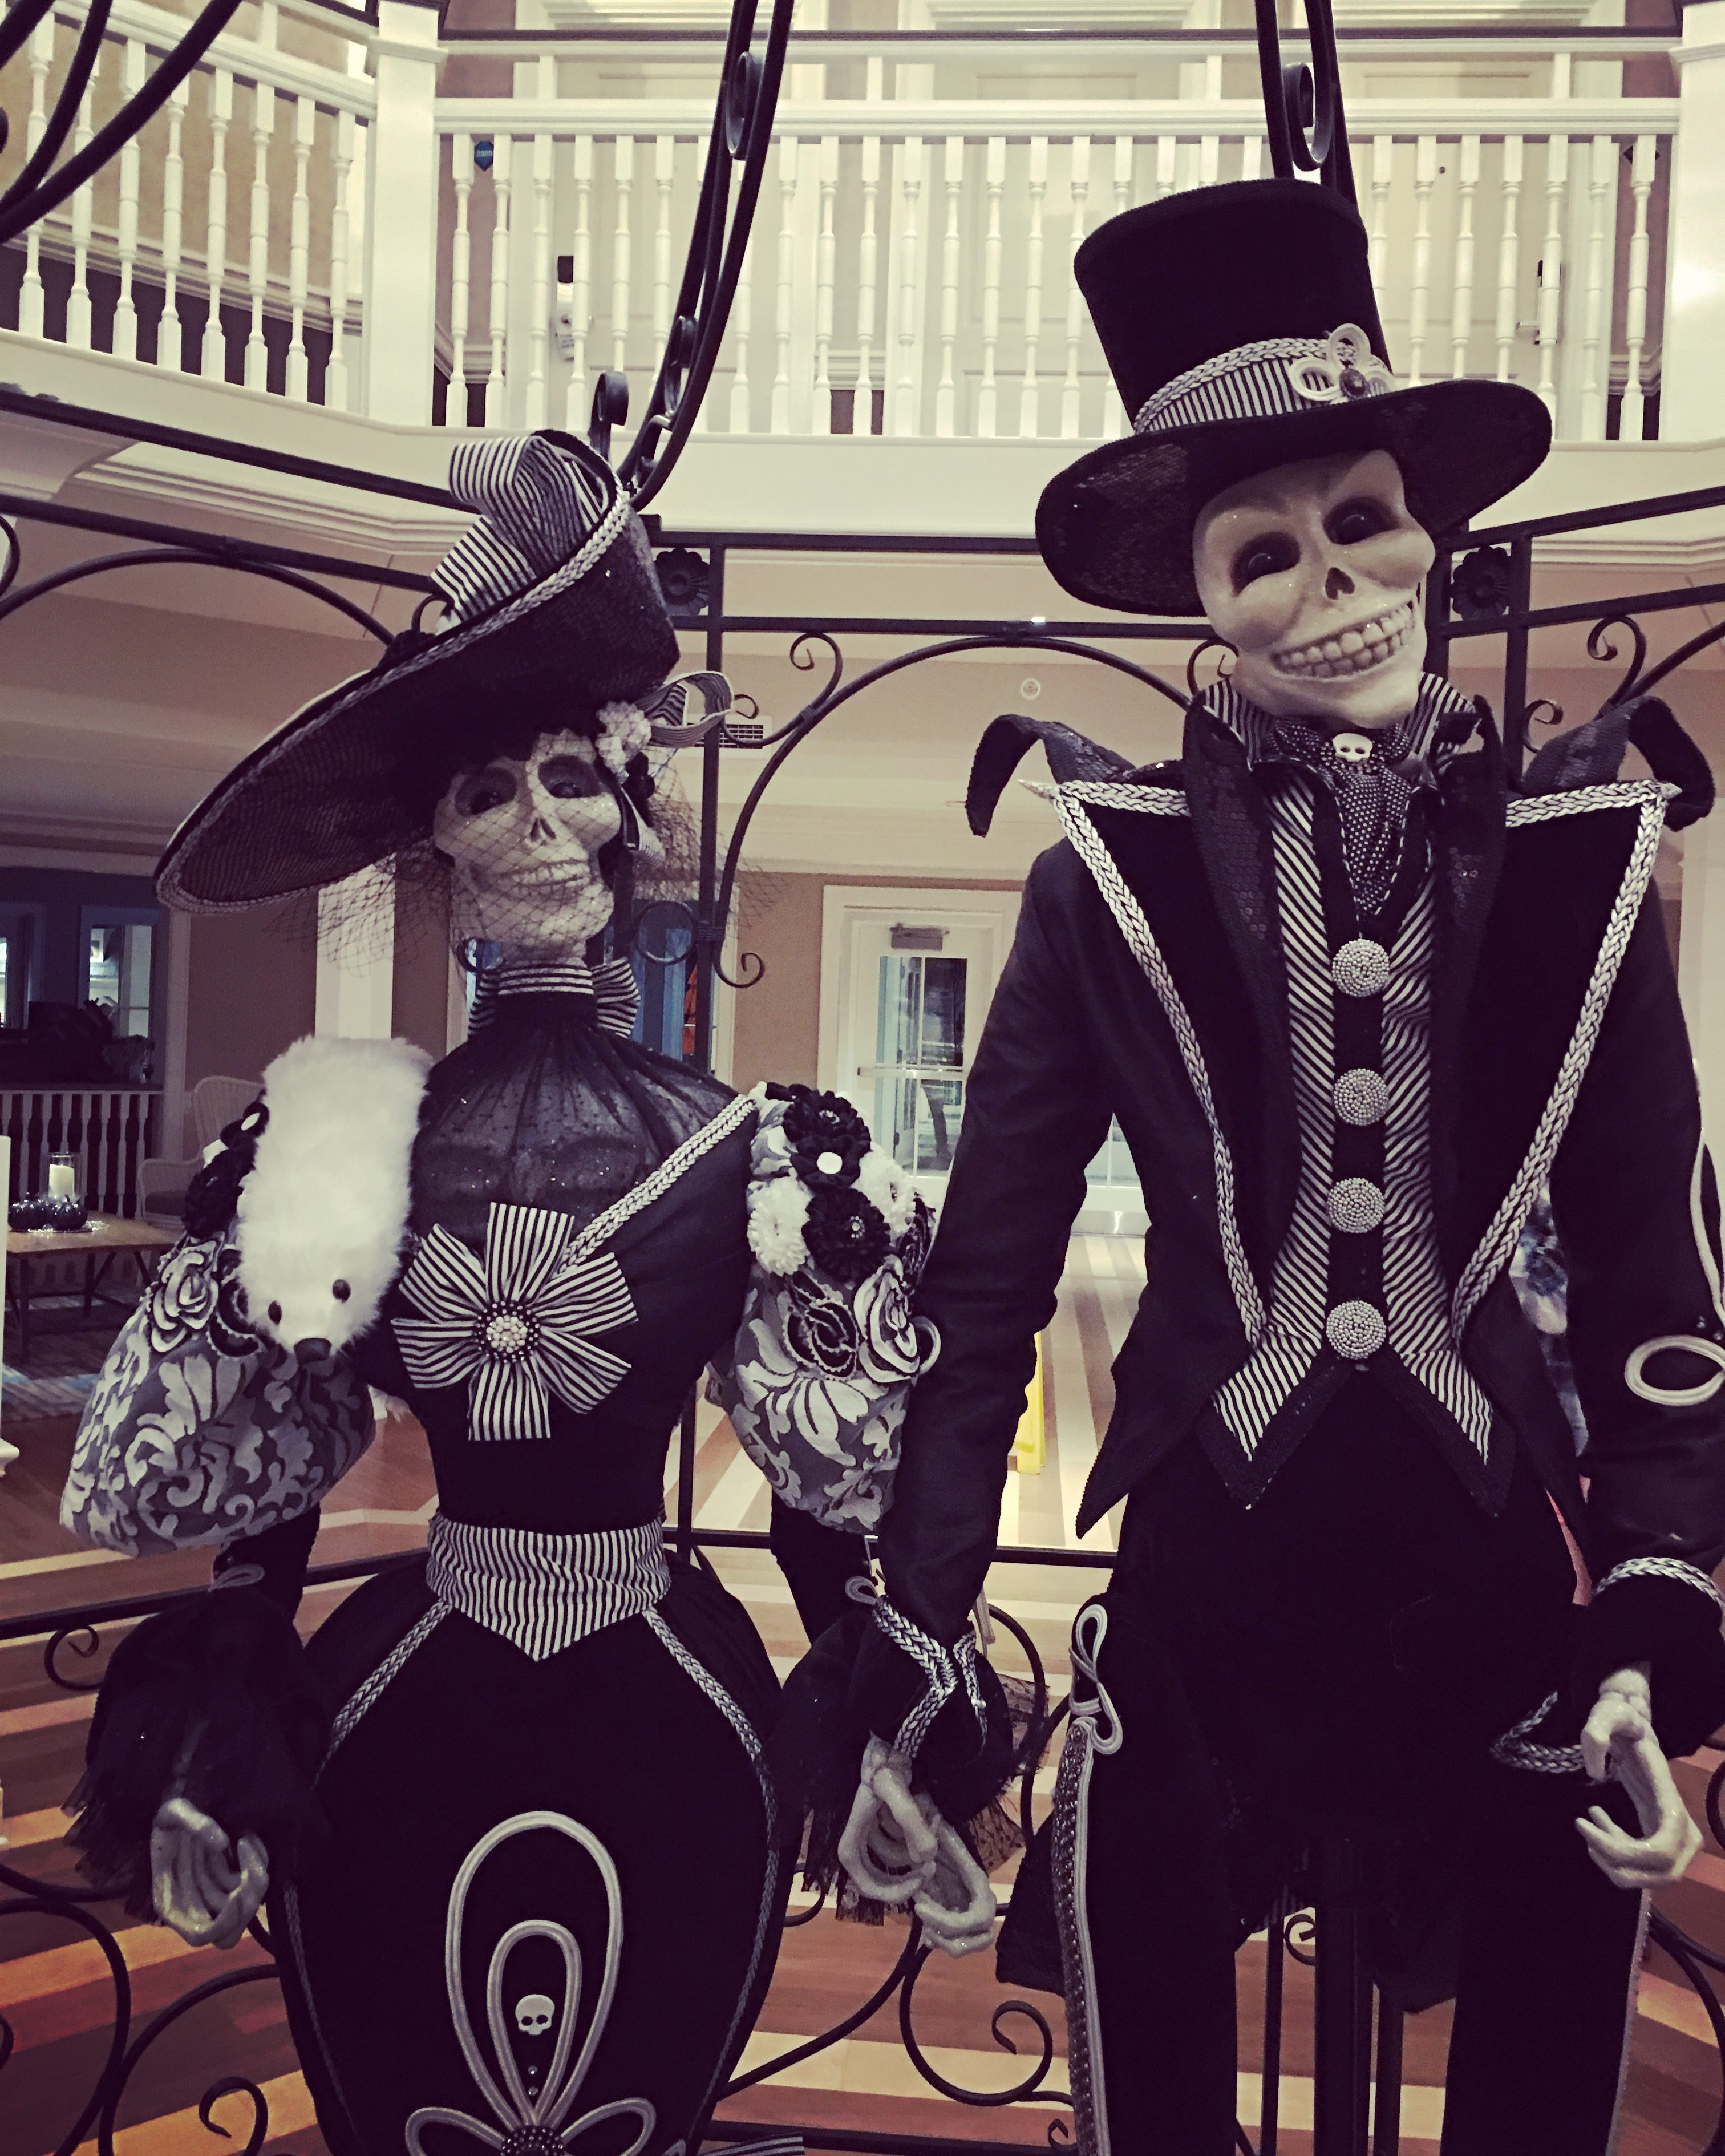 HalloWeekends - Hotel Breakers at Cedar Point gets decked out for Halloween